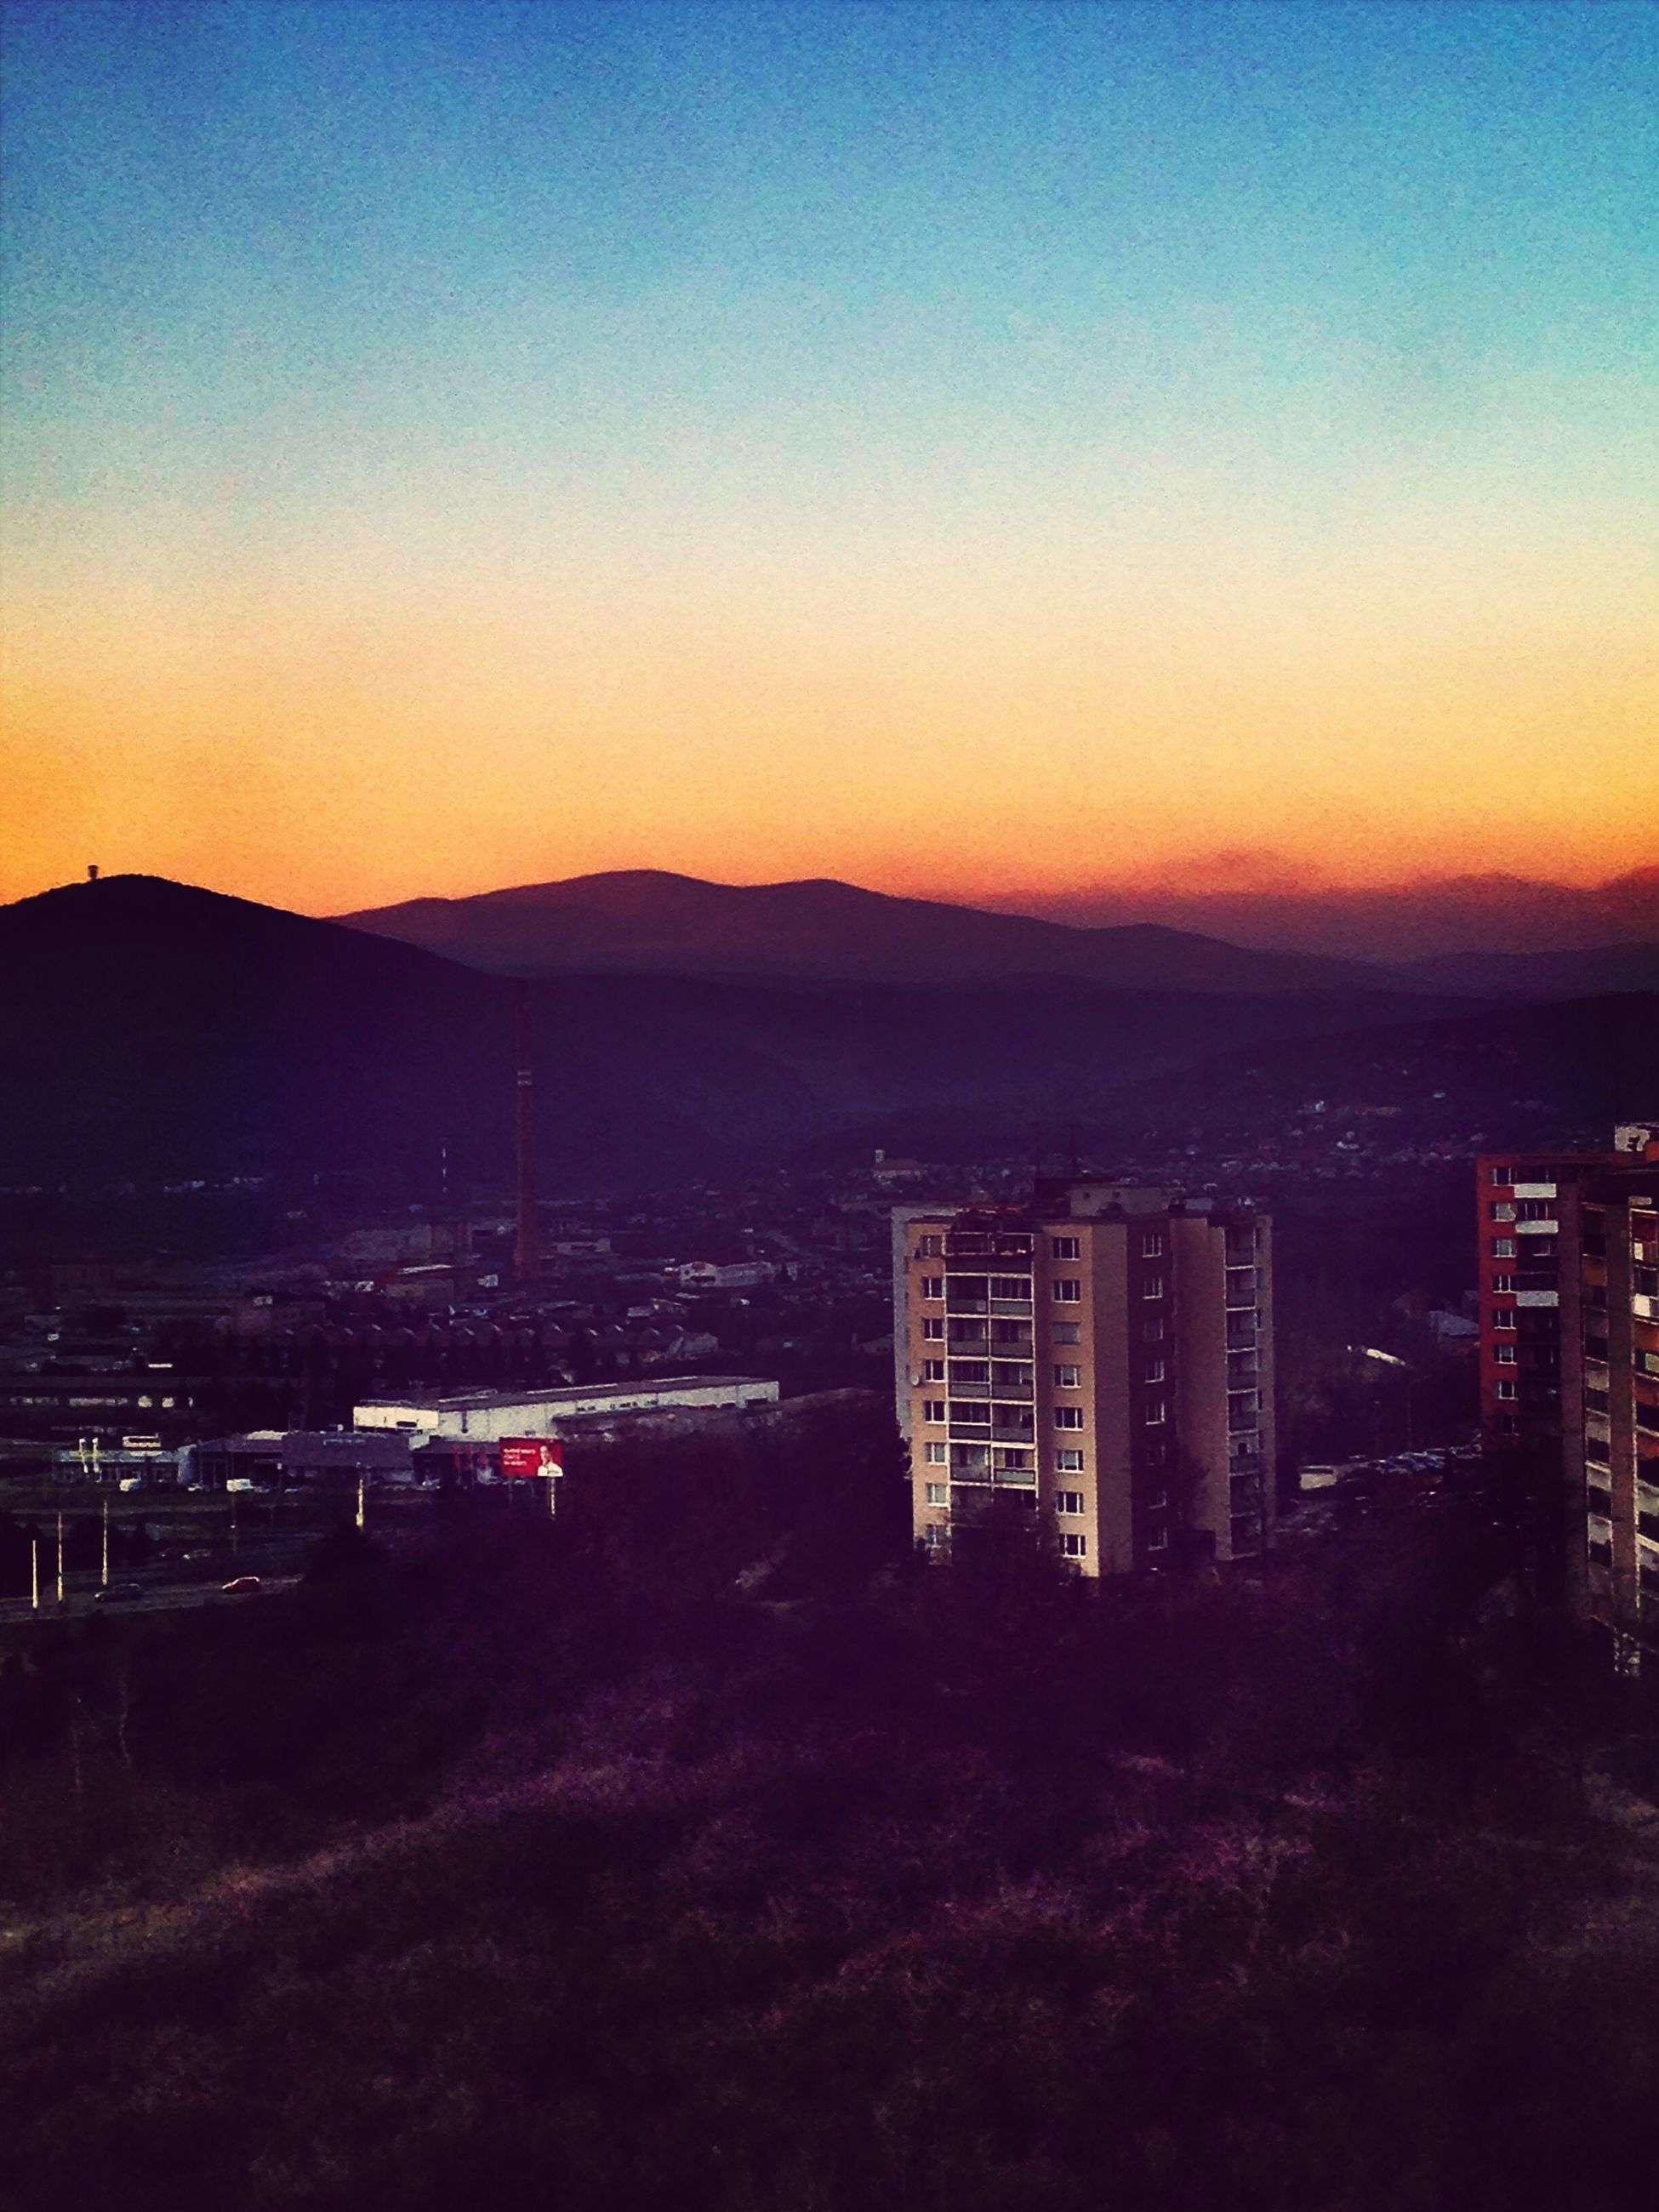 mountain, sunset, clear sky, copy space, building exterior, city, architecture, built structure, mountain range, cityscape, orange color, dusk, illuminated, scenics, landscape, tranquility, outdoors, high angle view, tranquil scene, beauty in nature